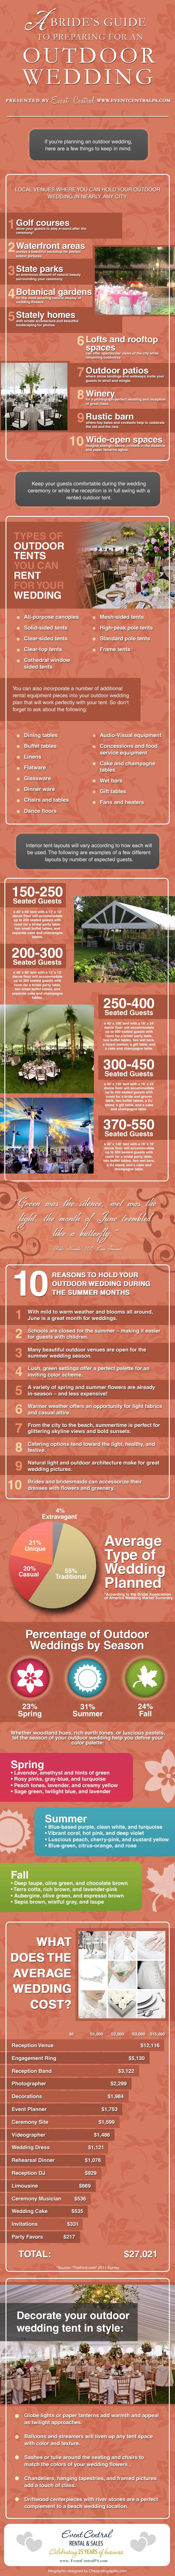 Guide for Outdoor Weddings